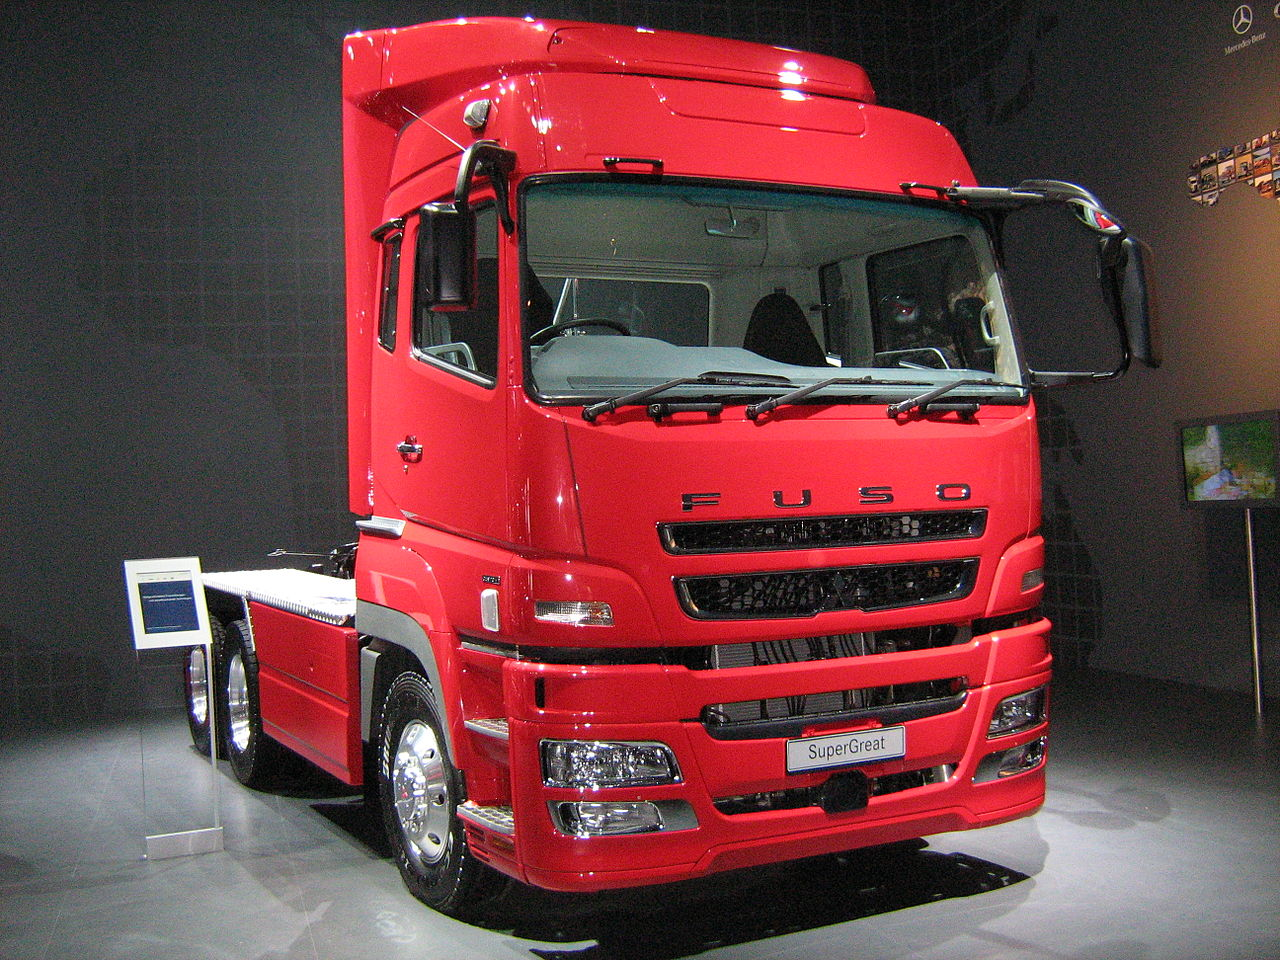 The Mitsubishi Fuso Truck and Bus Corporation (Japanese: 三菱ふそうトラック・バス株式会社  Hepburn: Mitsubishi Fusō Torakku・Basu Kabushiki gaisha?) is a ...